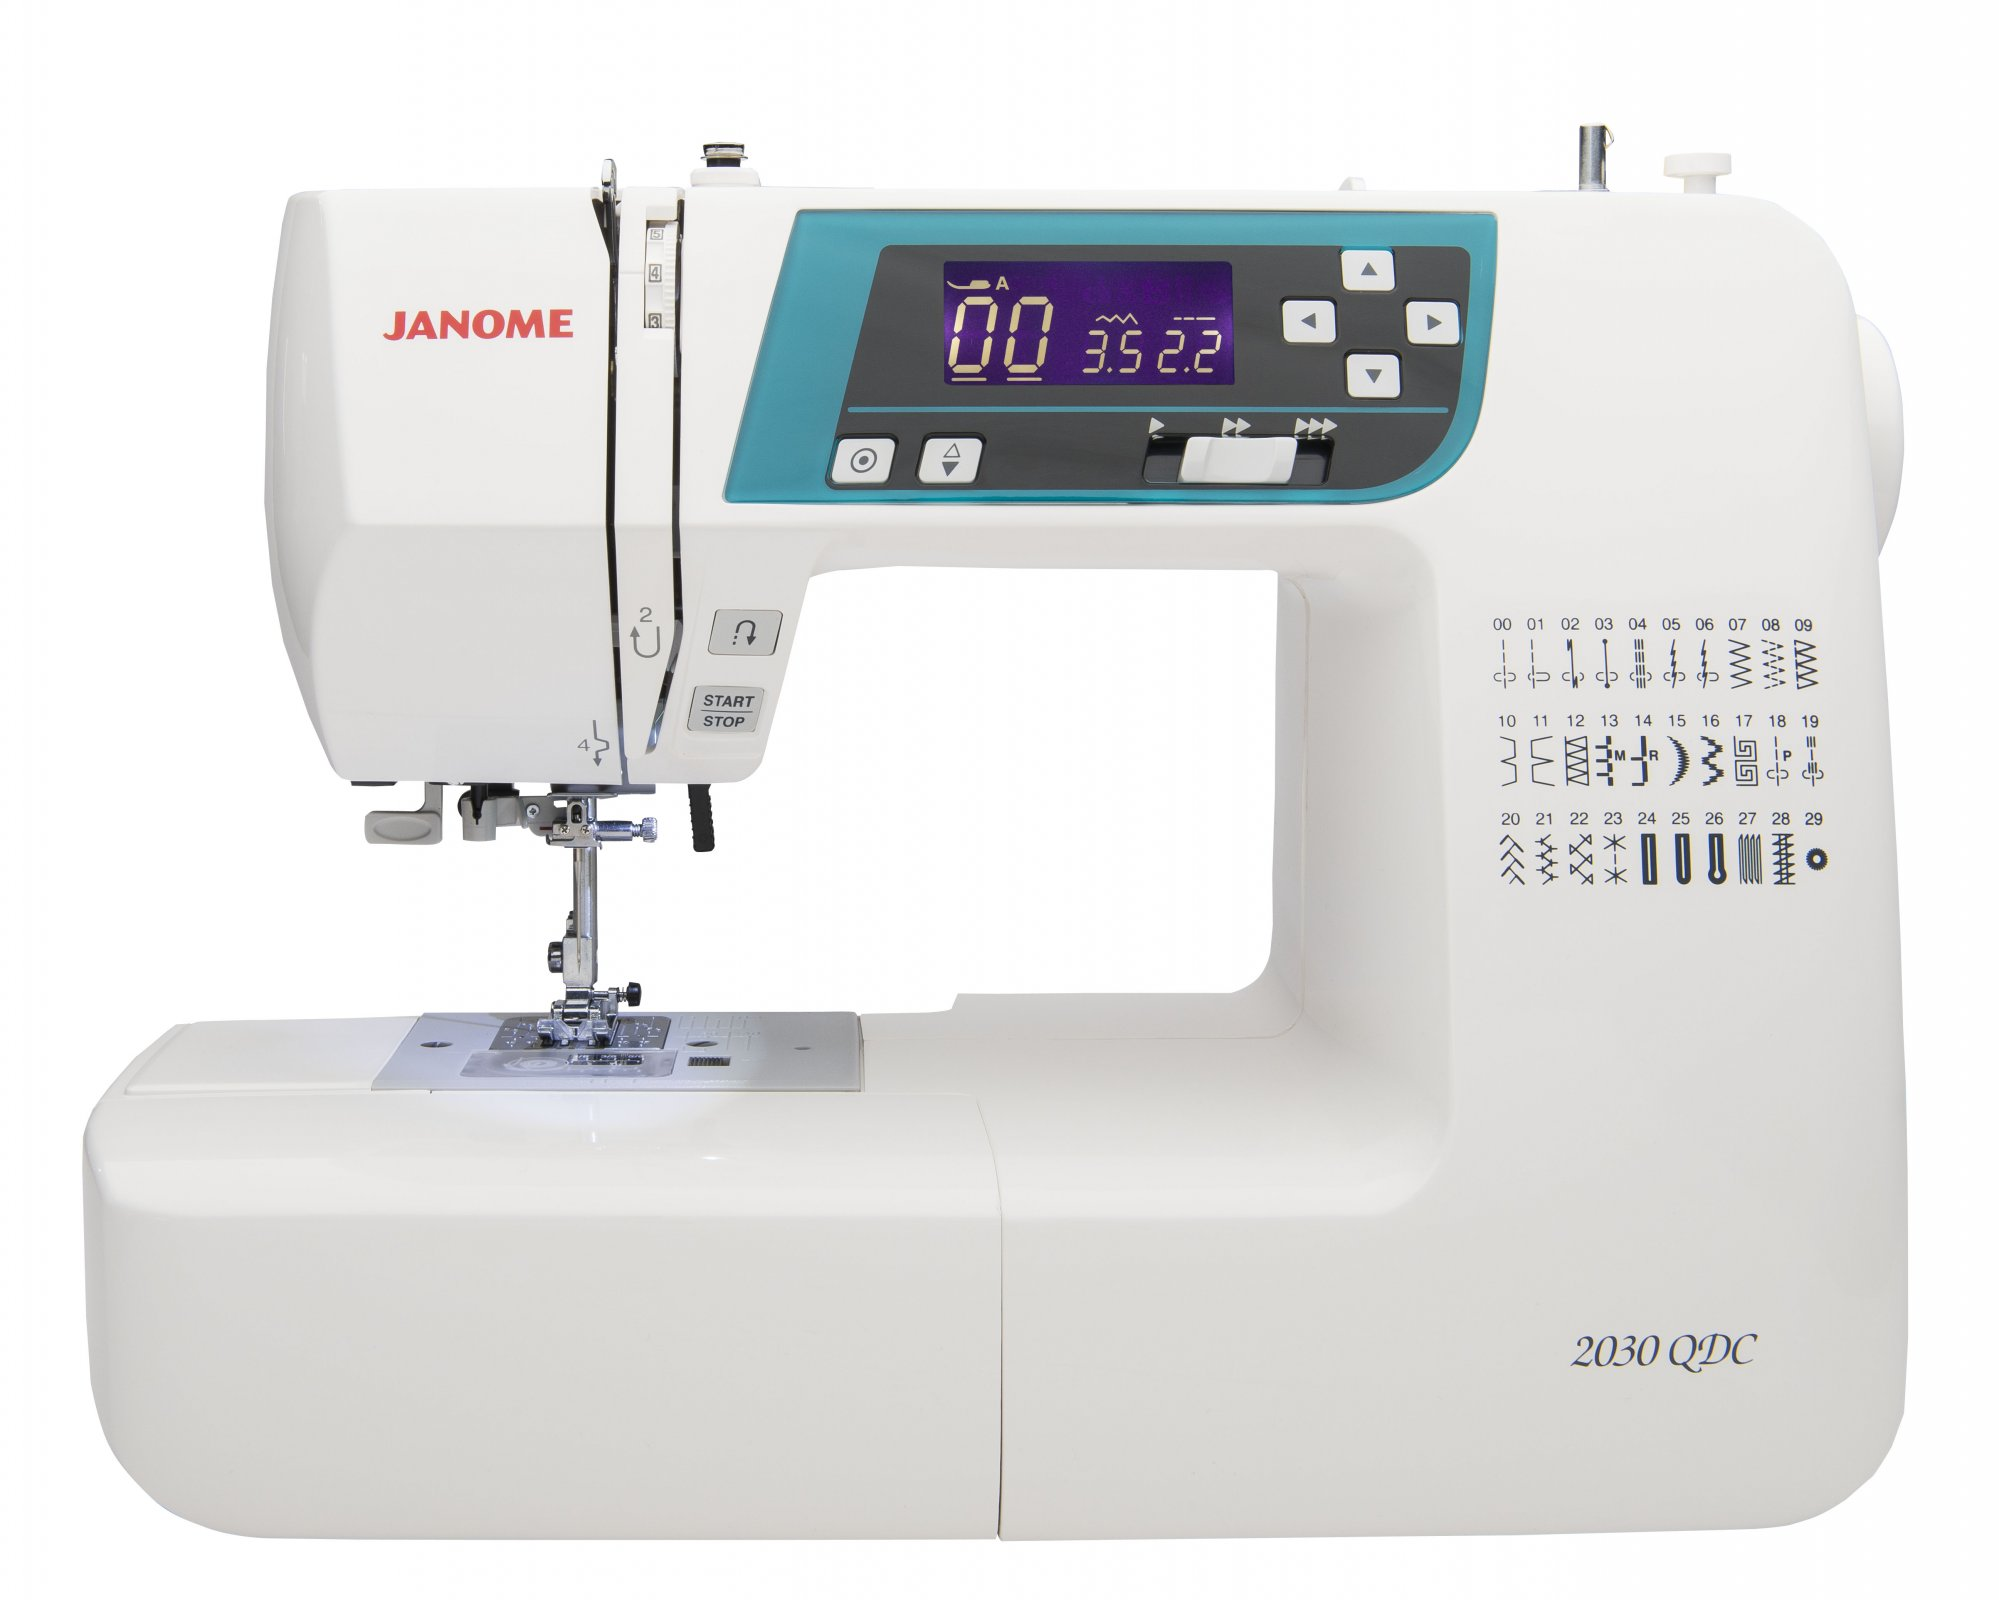 JANOME 2030QDC Sewing Machine